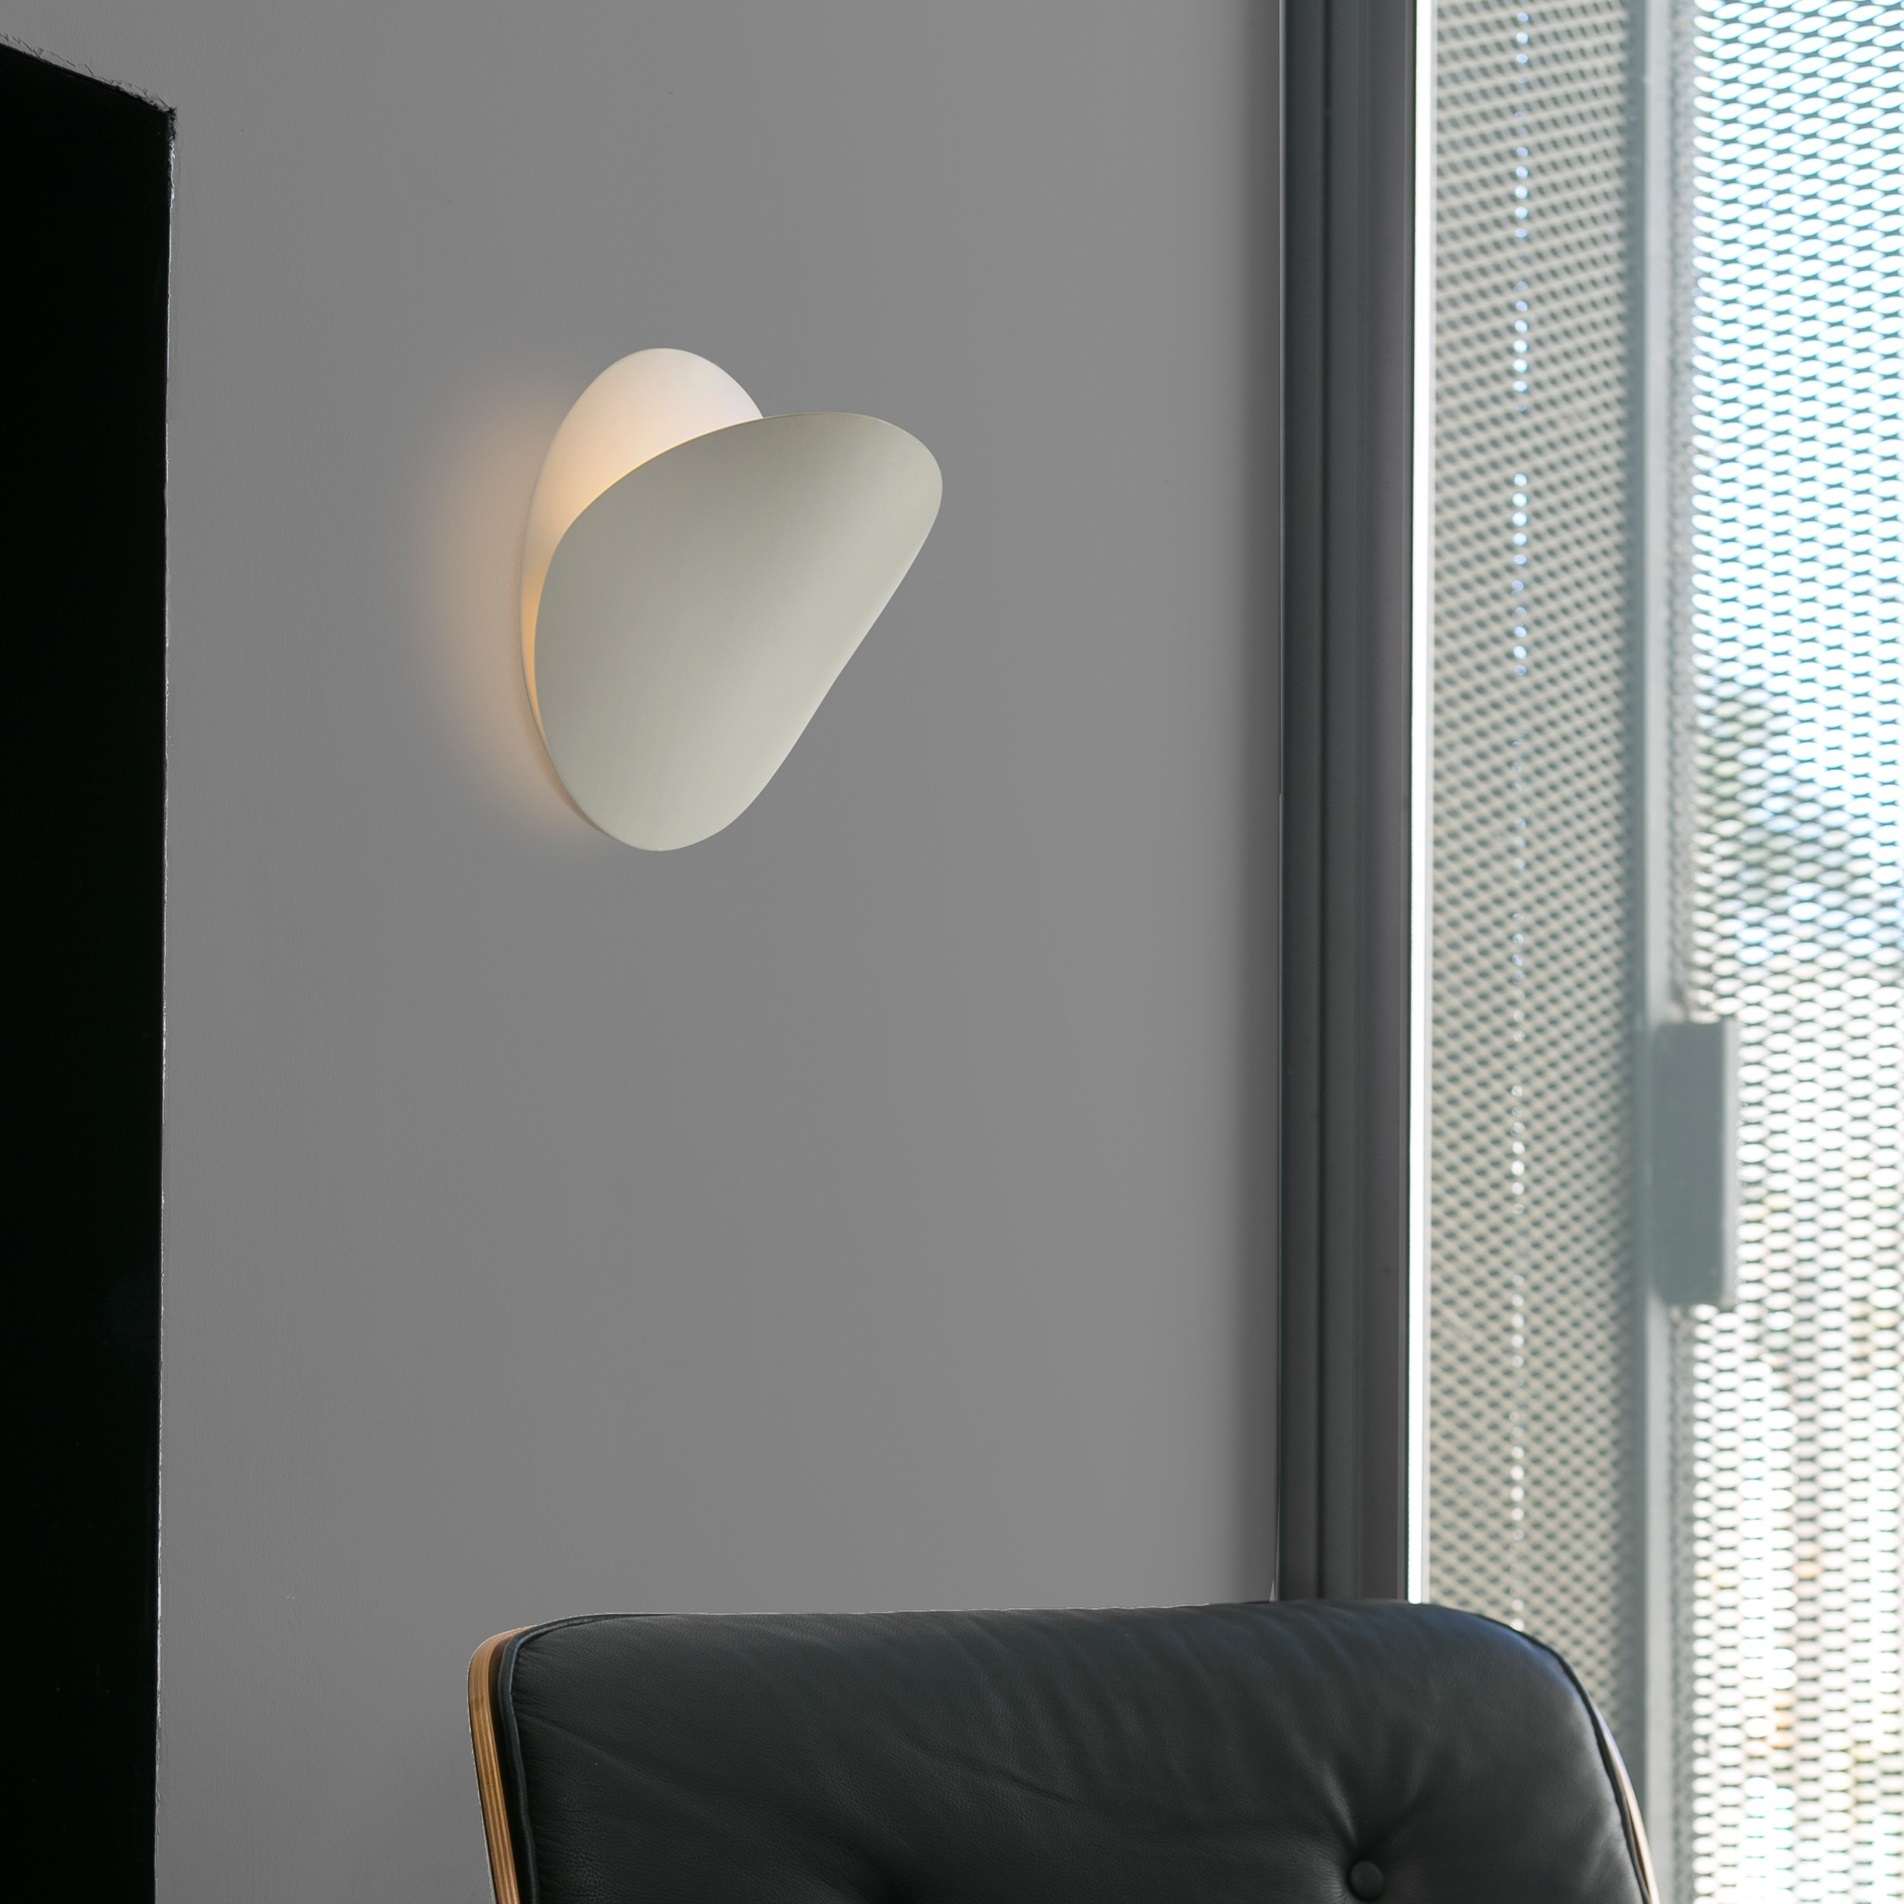 applique murale ovo blanc 24cm faro luminaires nedgis. Black Bedroom Furniture Sets. Home Design Ideas